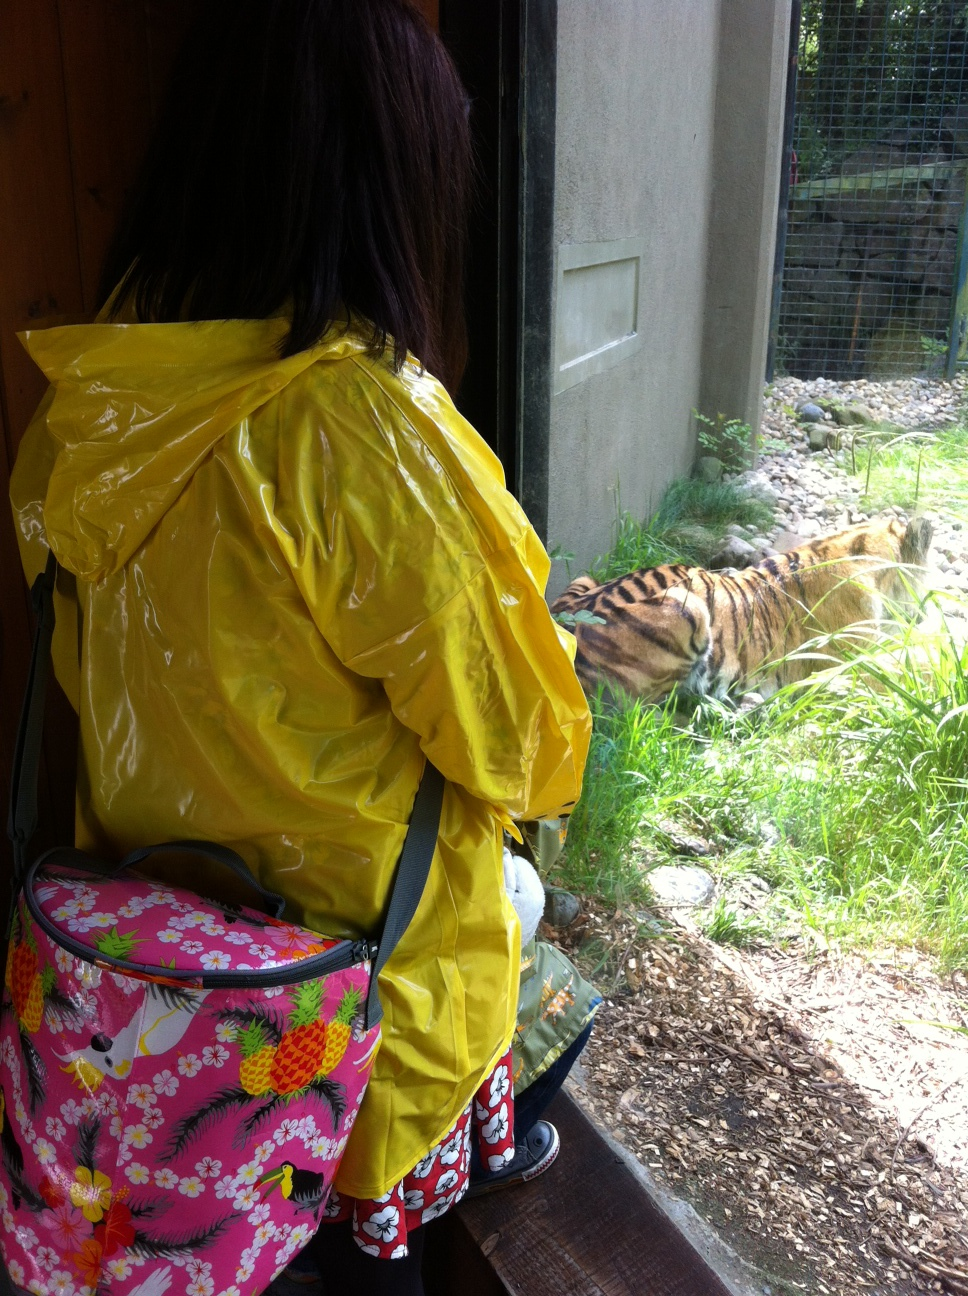 Trip to Dublin Zoo with Ikea Picnic Goodies